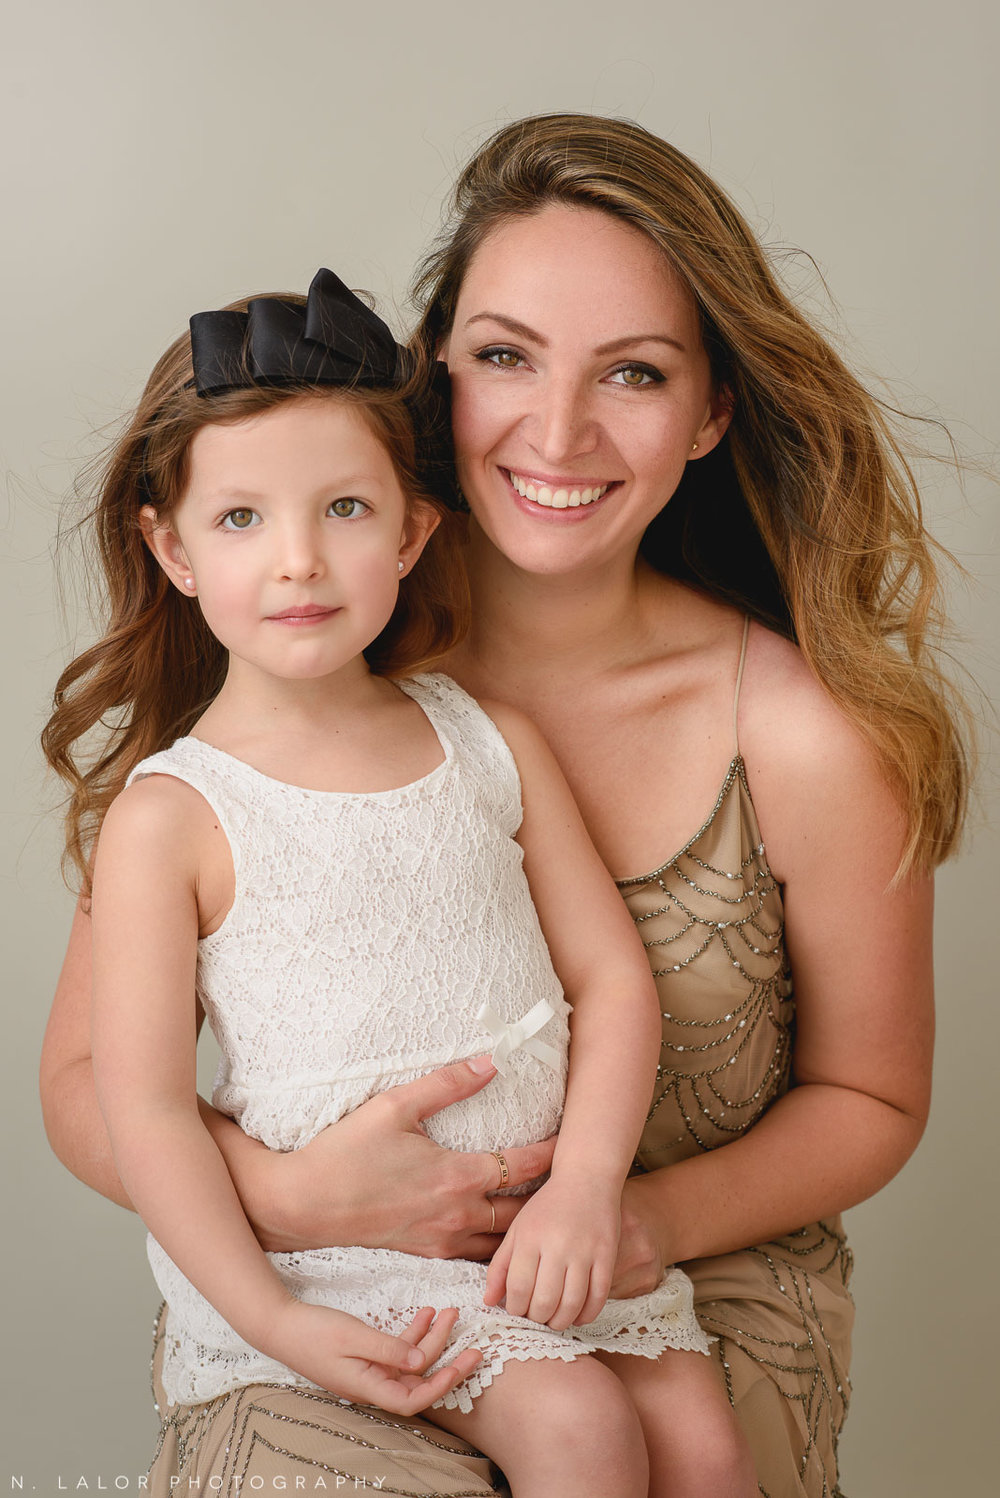 Image of Mom holding her daughter. A Mother and Daughter photoshoot with N. Lalor Photography in Greenwich, Connecticut.